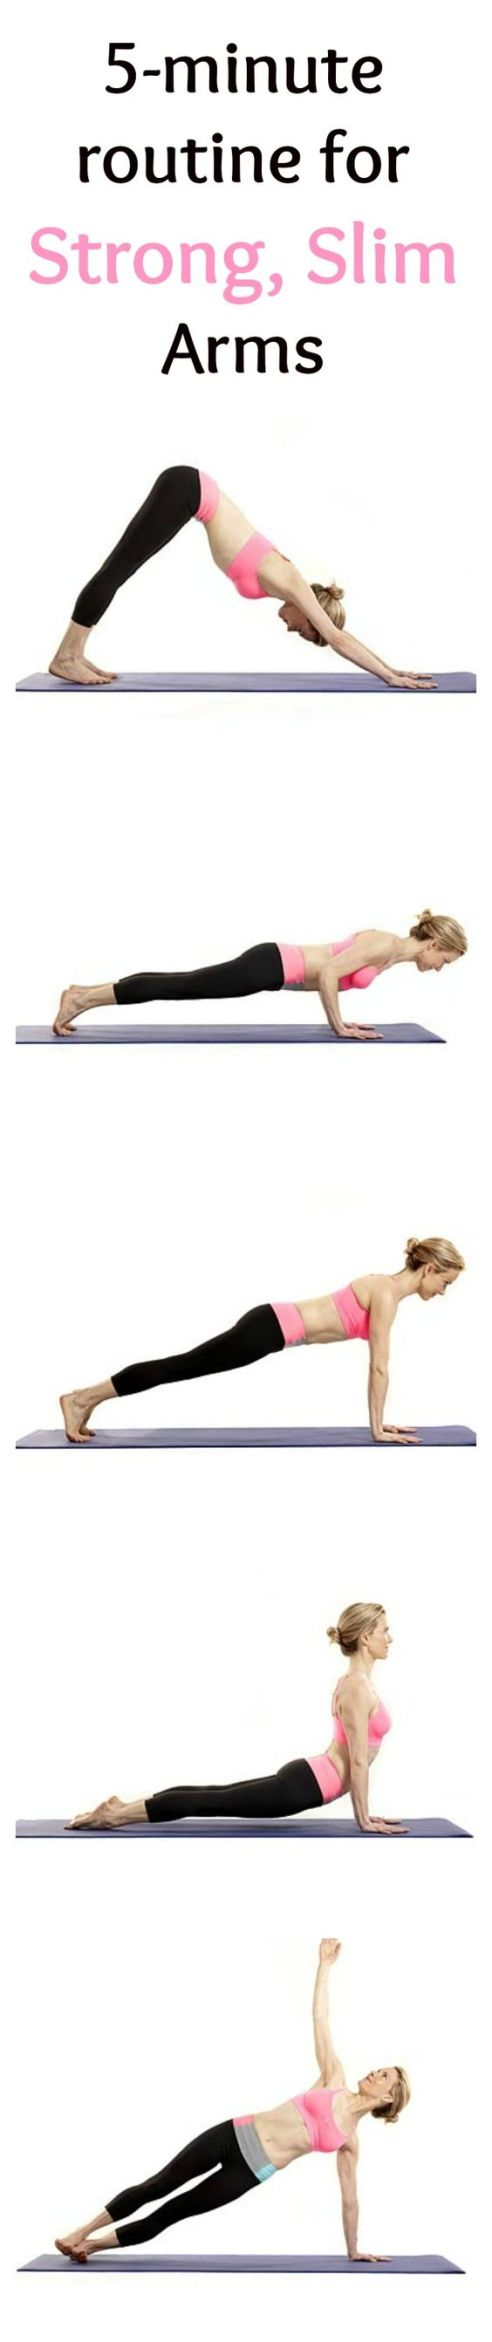 Want to tone your arms? Try these arm workouts or toned, strong and beautiful arms. These quick workouts take 5 minutes of your time and you can do them daily, whenever you have the time. This amazing list includes 5-minute ab workouts for flat belly, 5-minute butt workouts, 5-minute leg workouts and inner thigh workouts and 5-minute arm workouts. Most of these exercises require almost no equipment. Some of them - just a pair of dumbbells and you can do them at home or anywhere you want. Have fun!